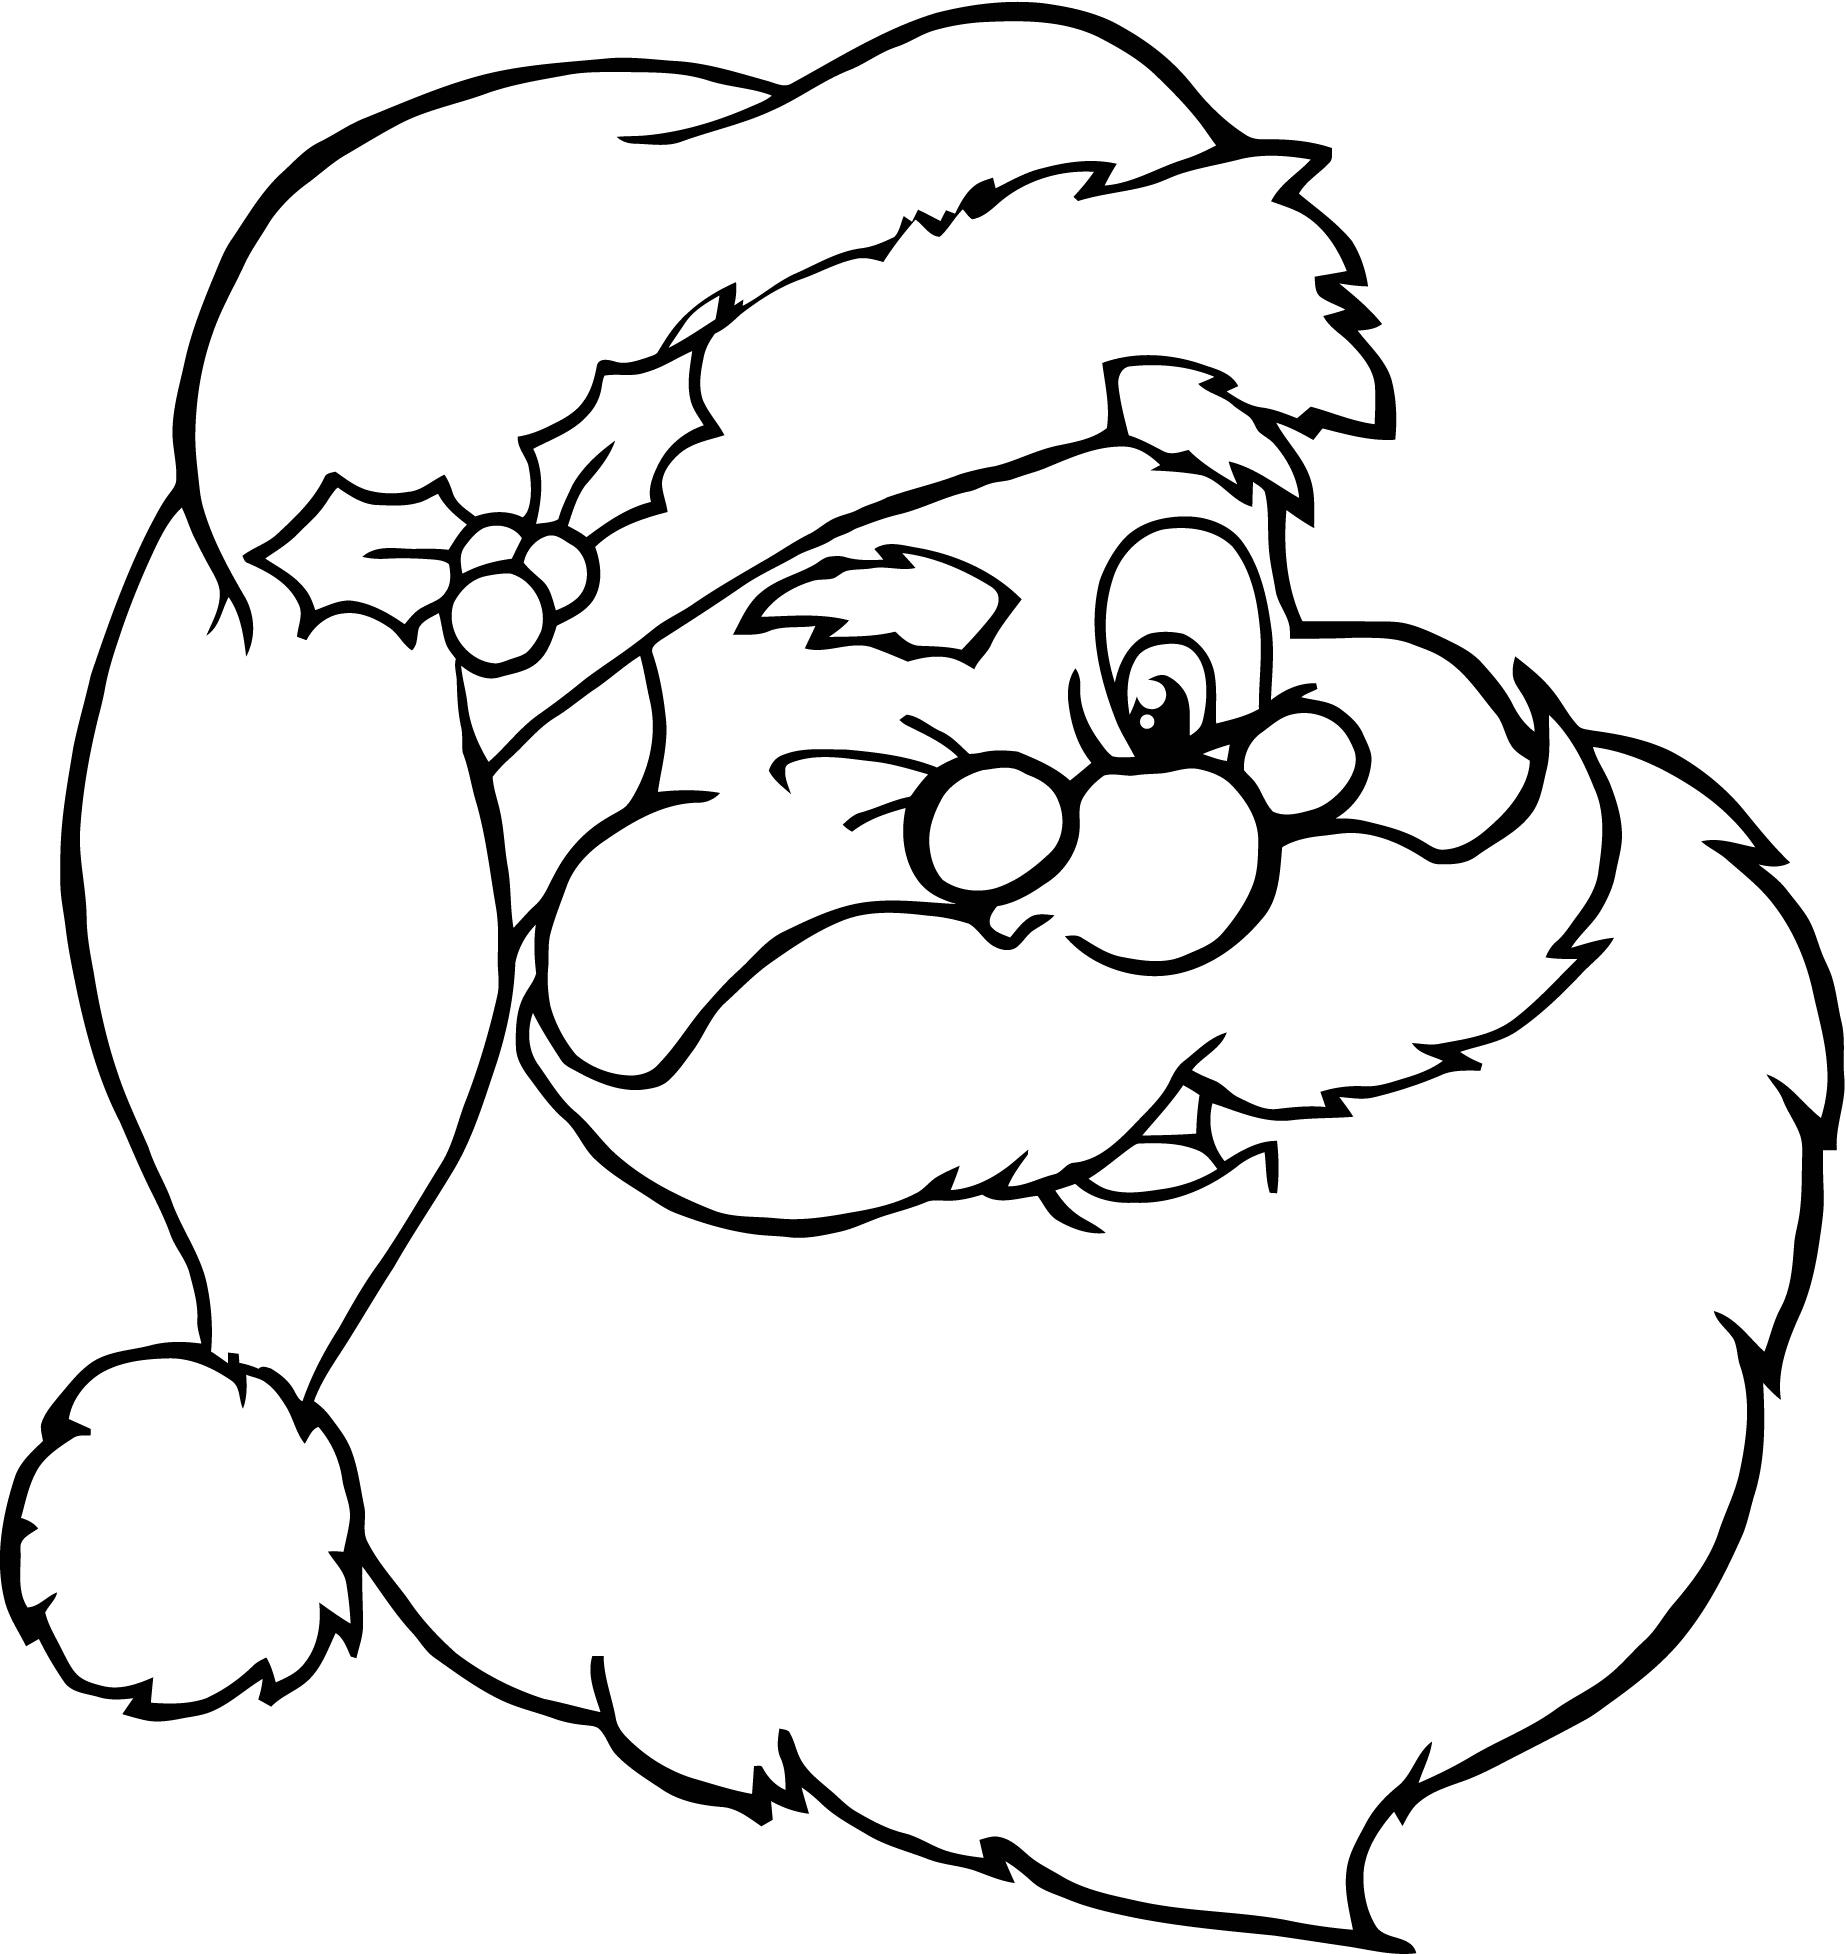 Santa Claus Head Coloring Pages Santa clause came to my town